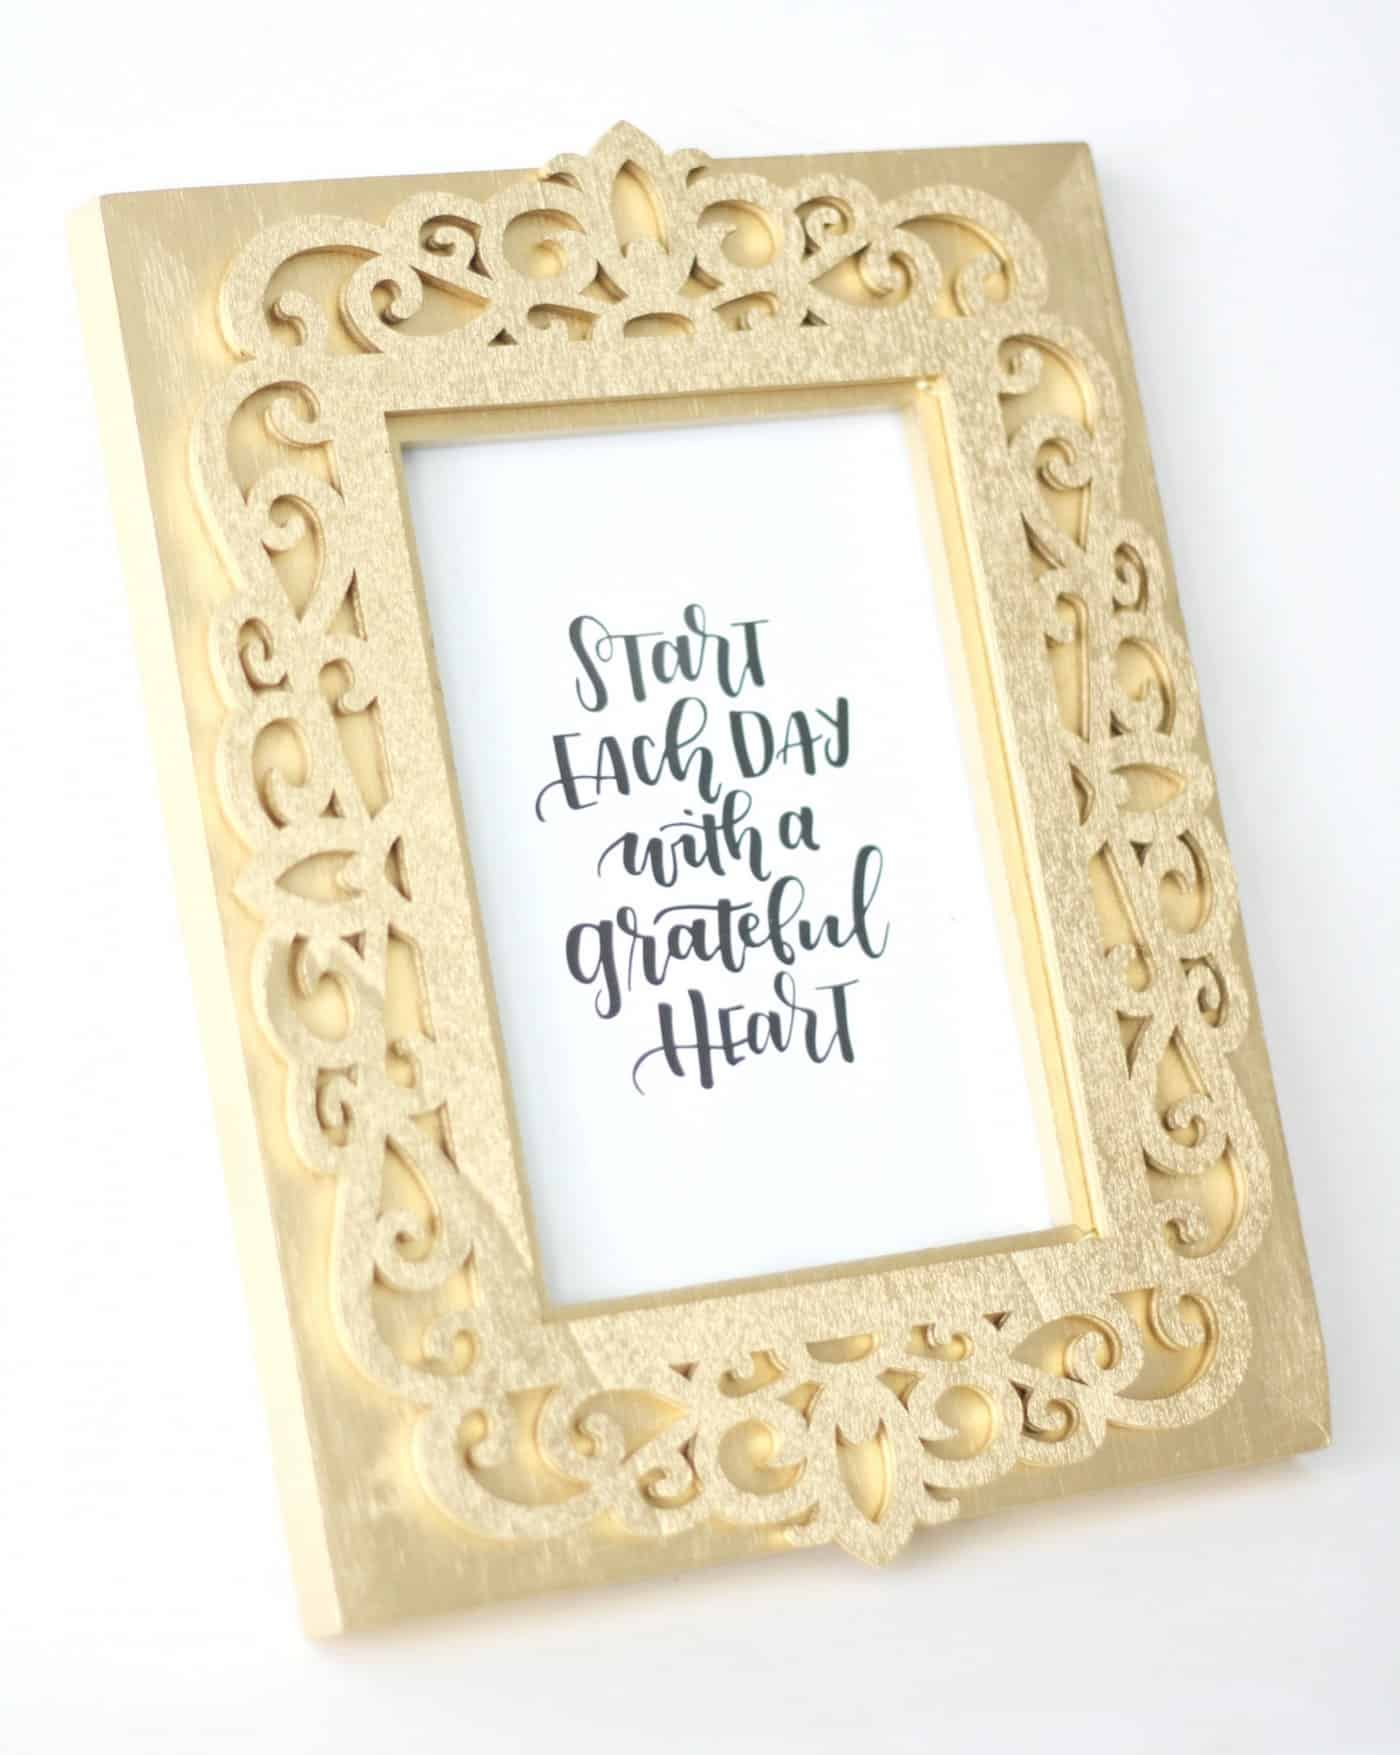 This DIY picture frame is such an eye catching project! Use spray paint to make it look like 14k gold. Very easy and very budget friendly!